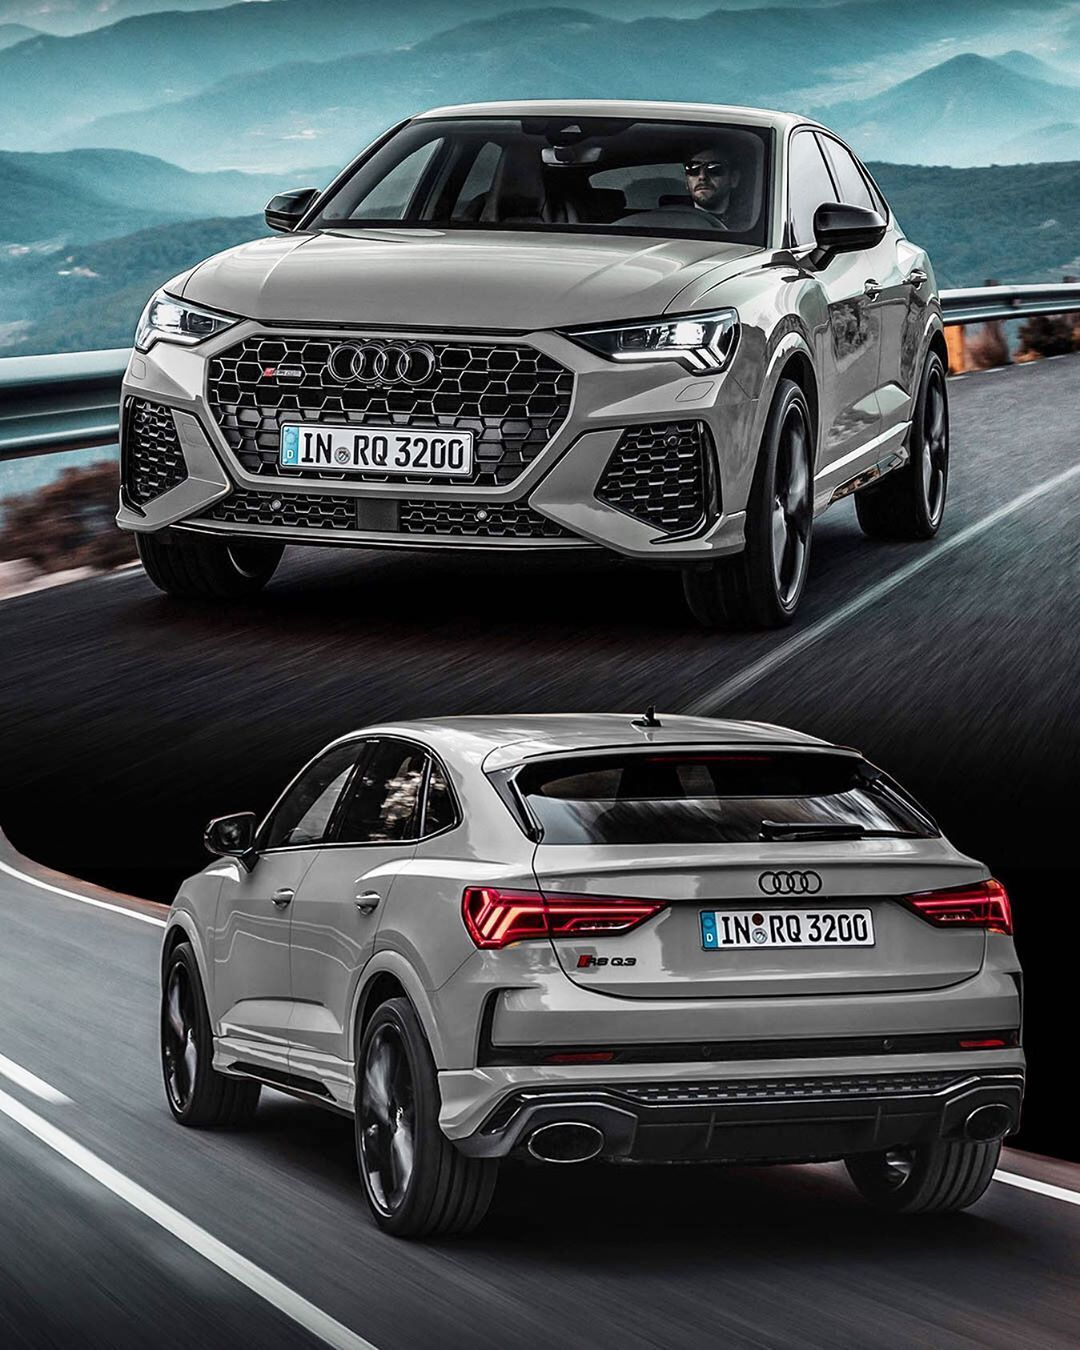 Seat Belt Mounted On Instagram Rsq3 Sportback Did Another Edit This Time In Nardo Grey What Do You Think About It In 2020 Audi Rsq3 Audi Q3 Audi Suv